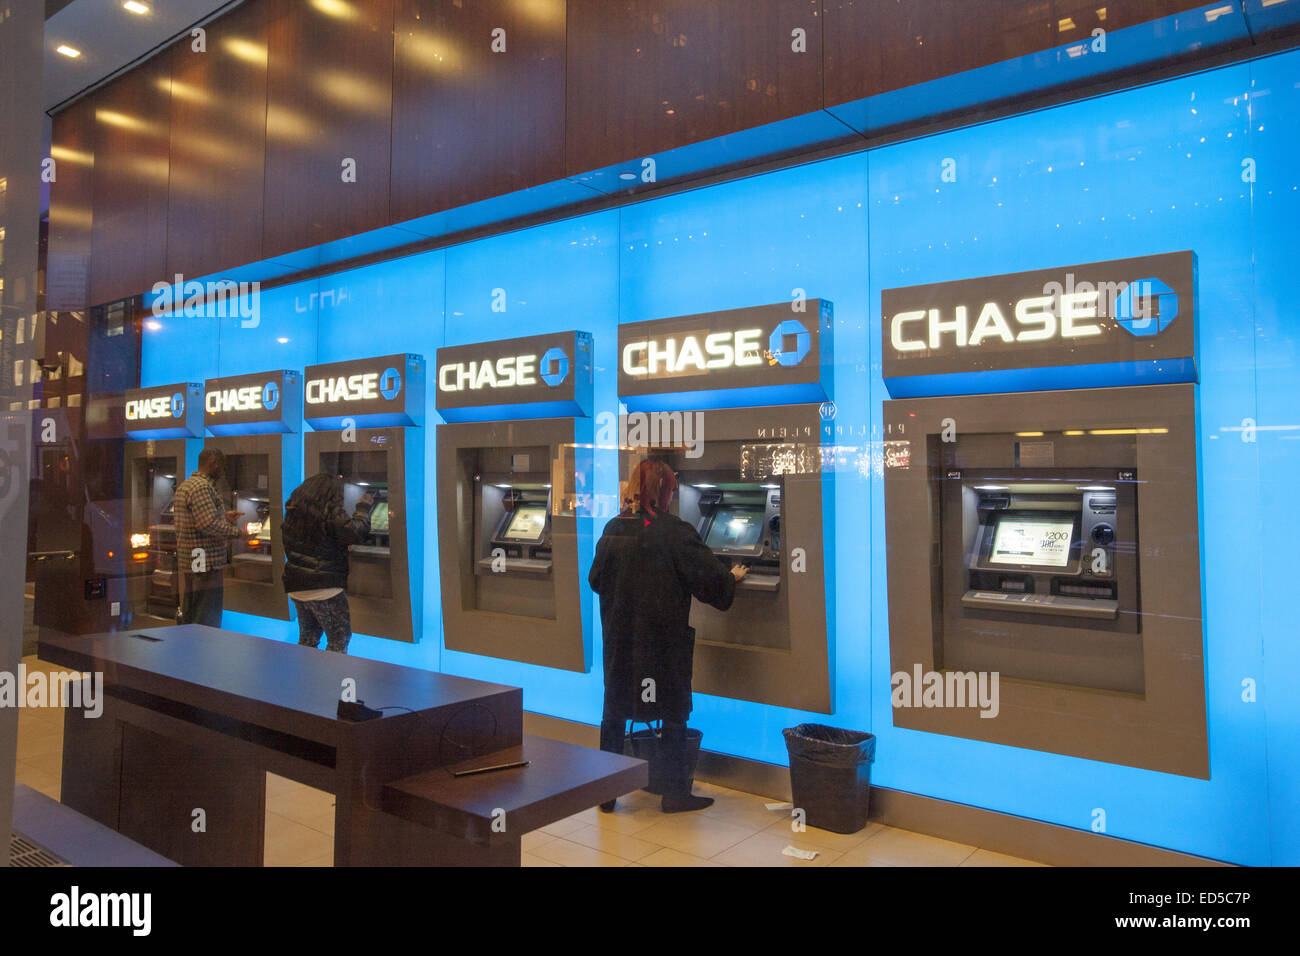 Chase Bank Branch Stock Photos & Chase Bank Branch Stock Images - Alamy